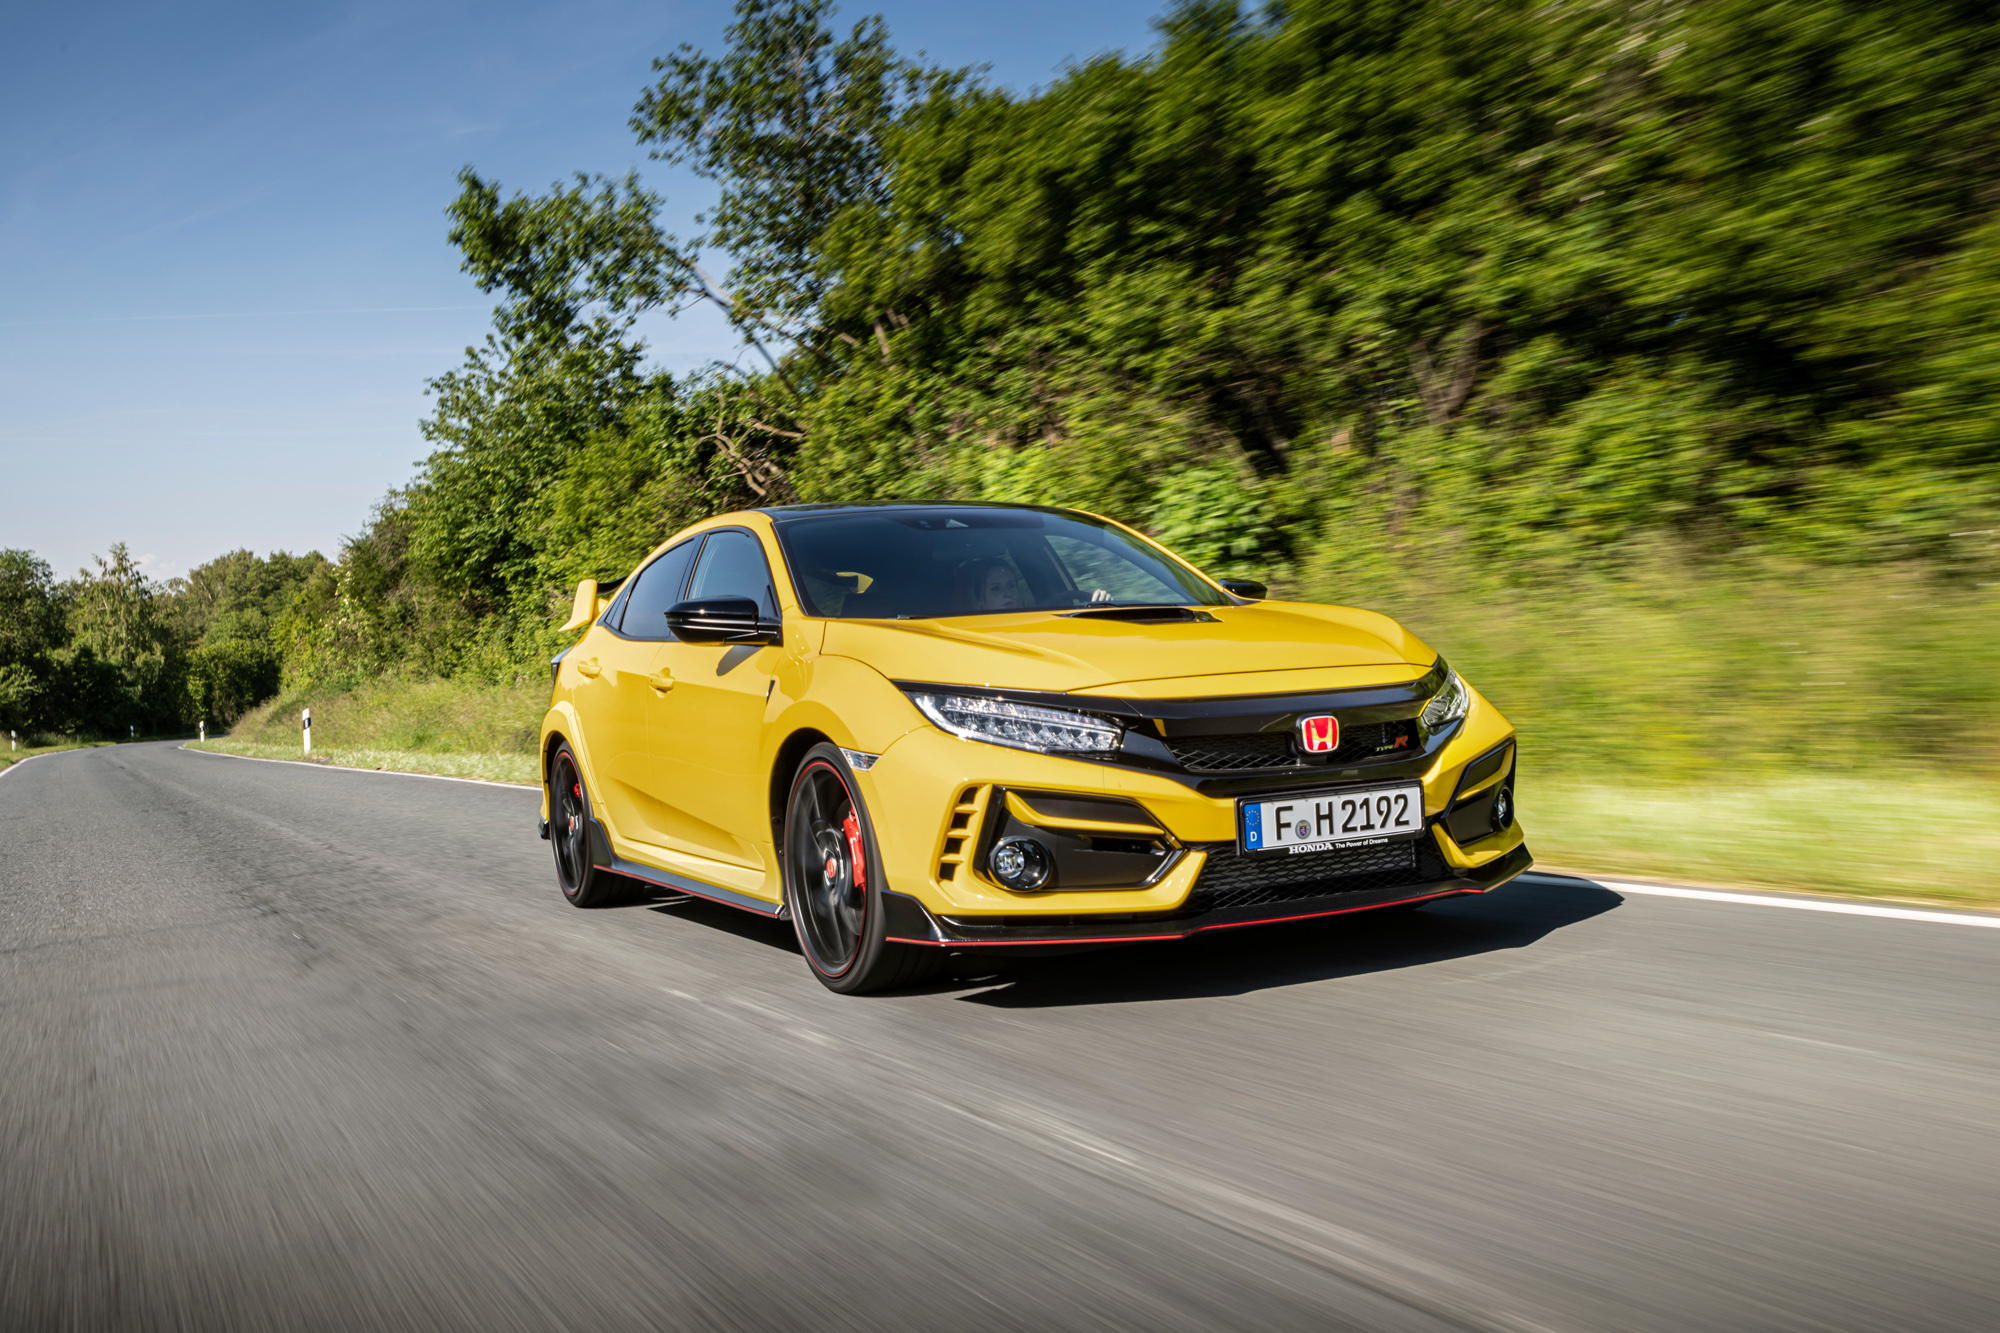 hondacivictyper2021limited-cafeautovn-7